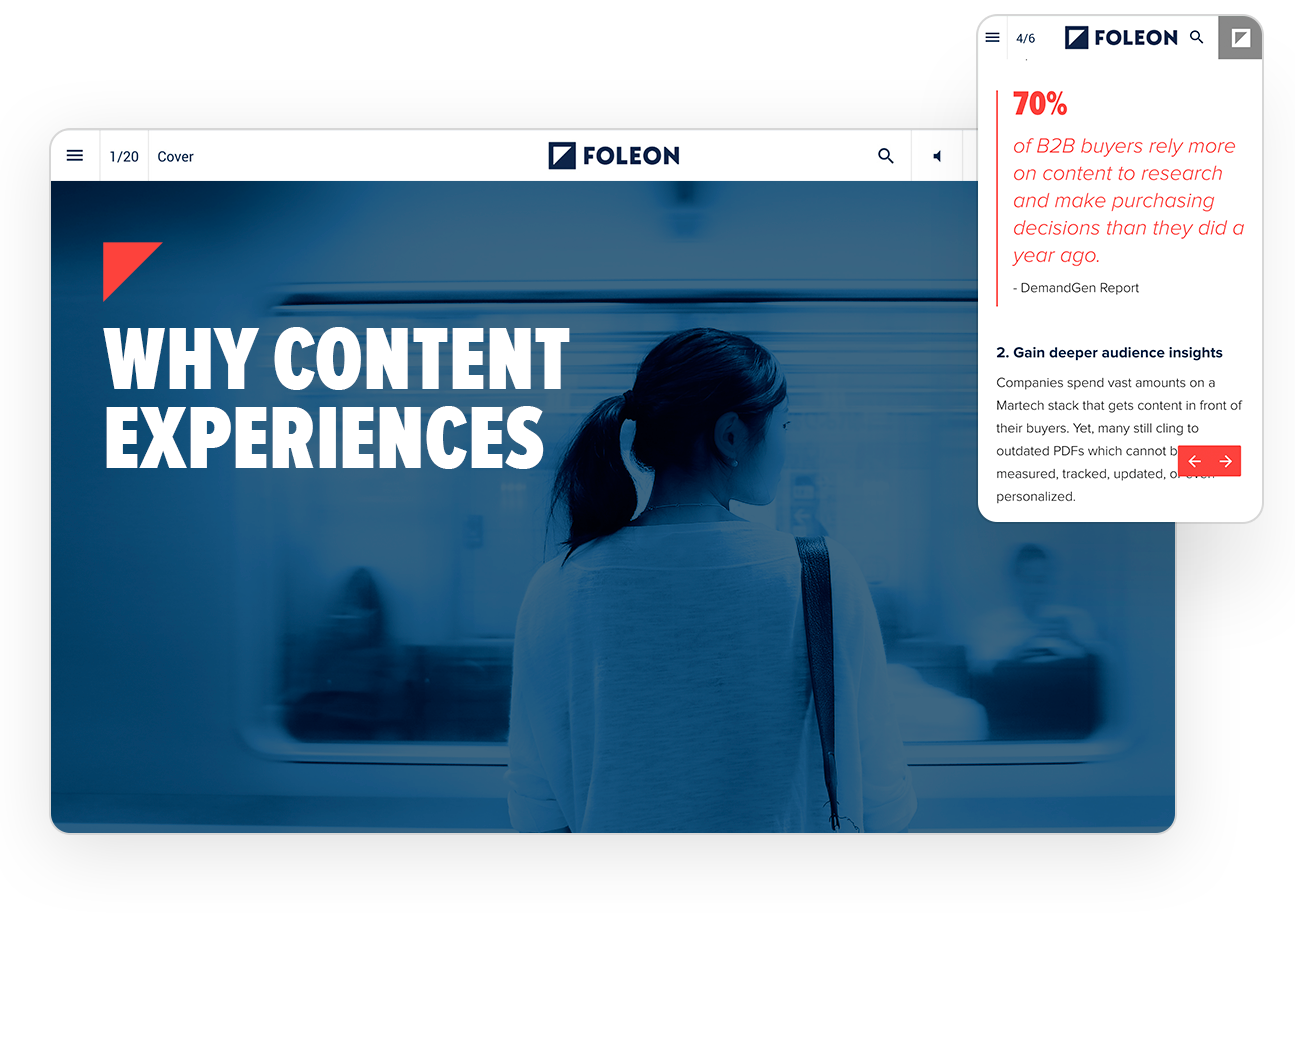 Why-content-experiences-visual-web-v4